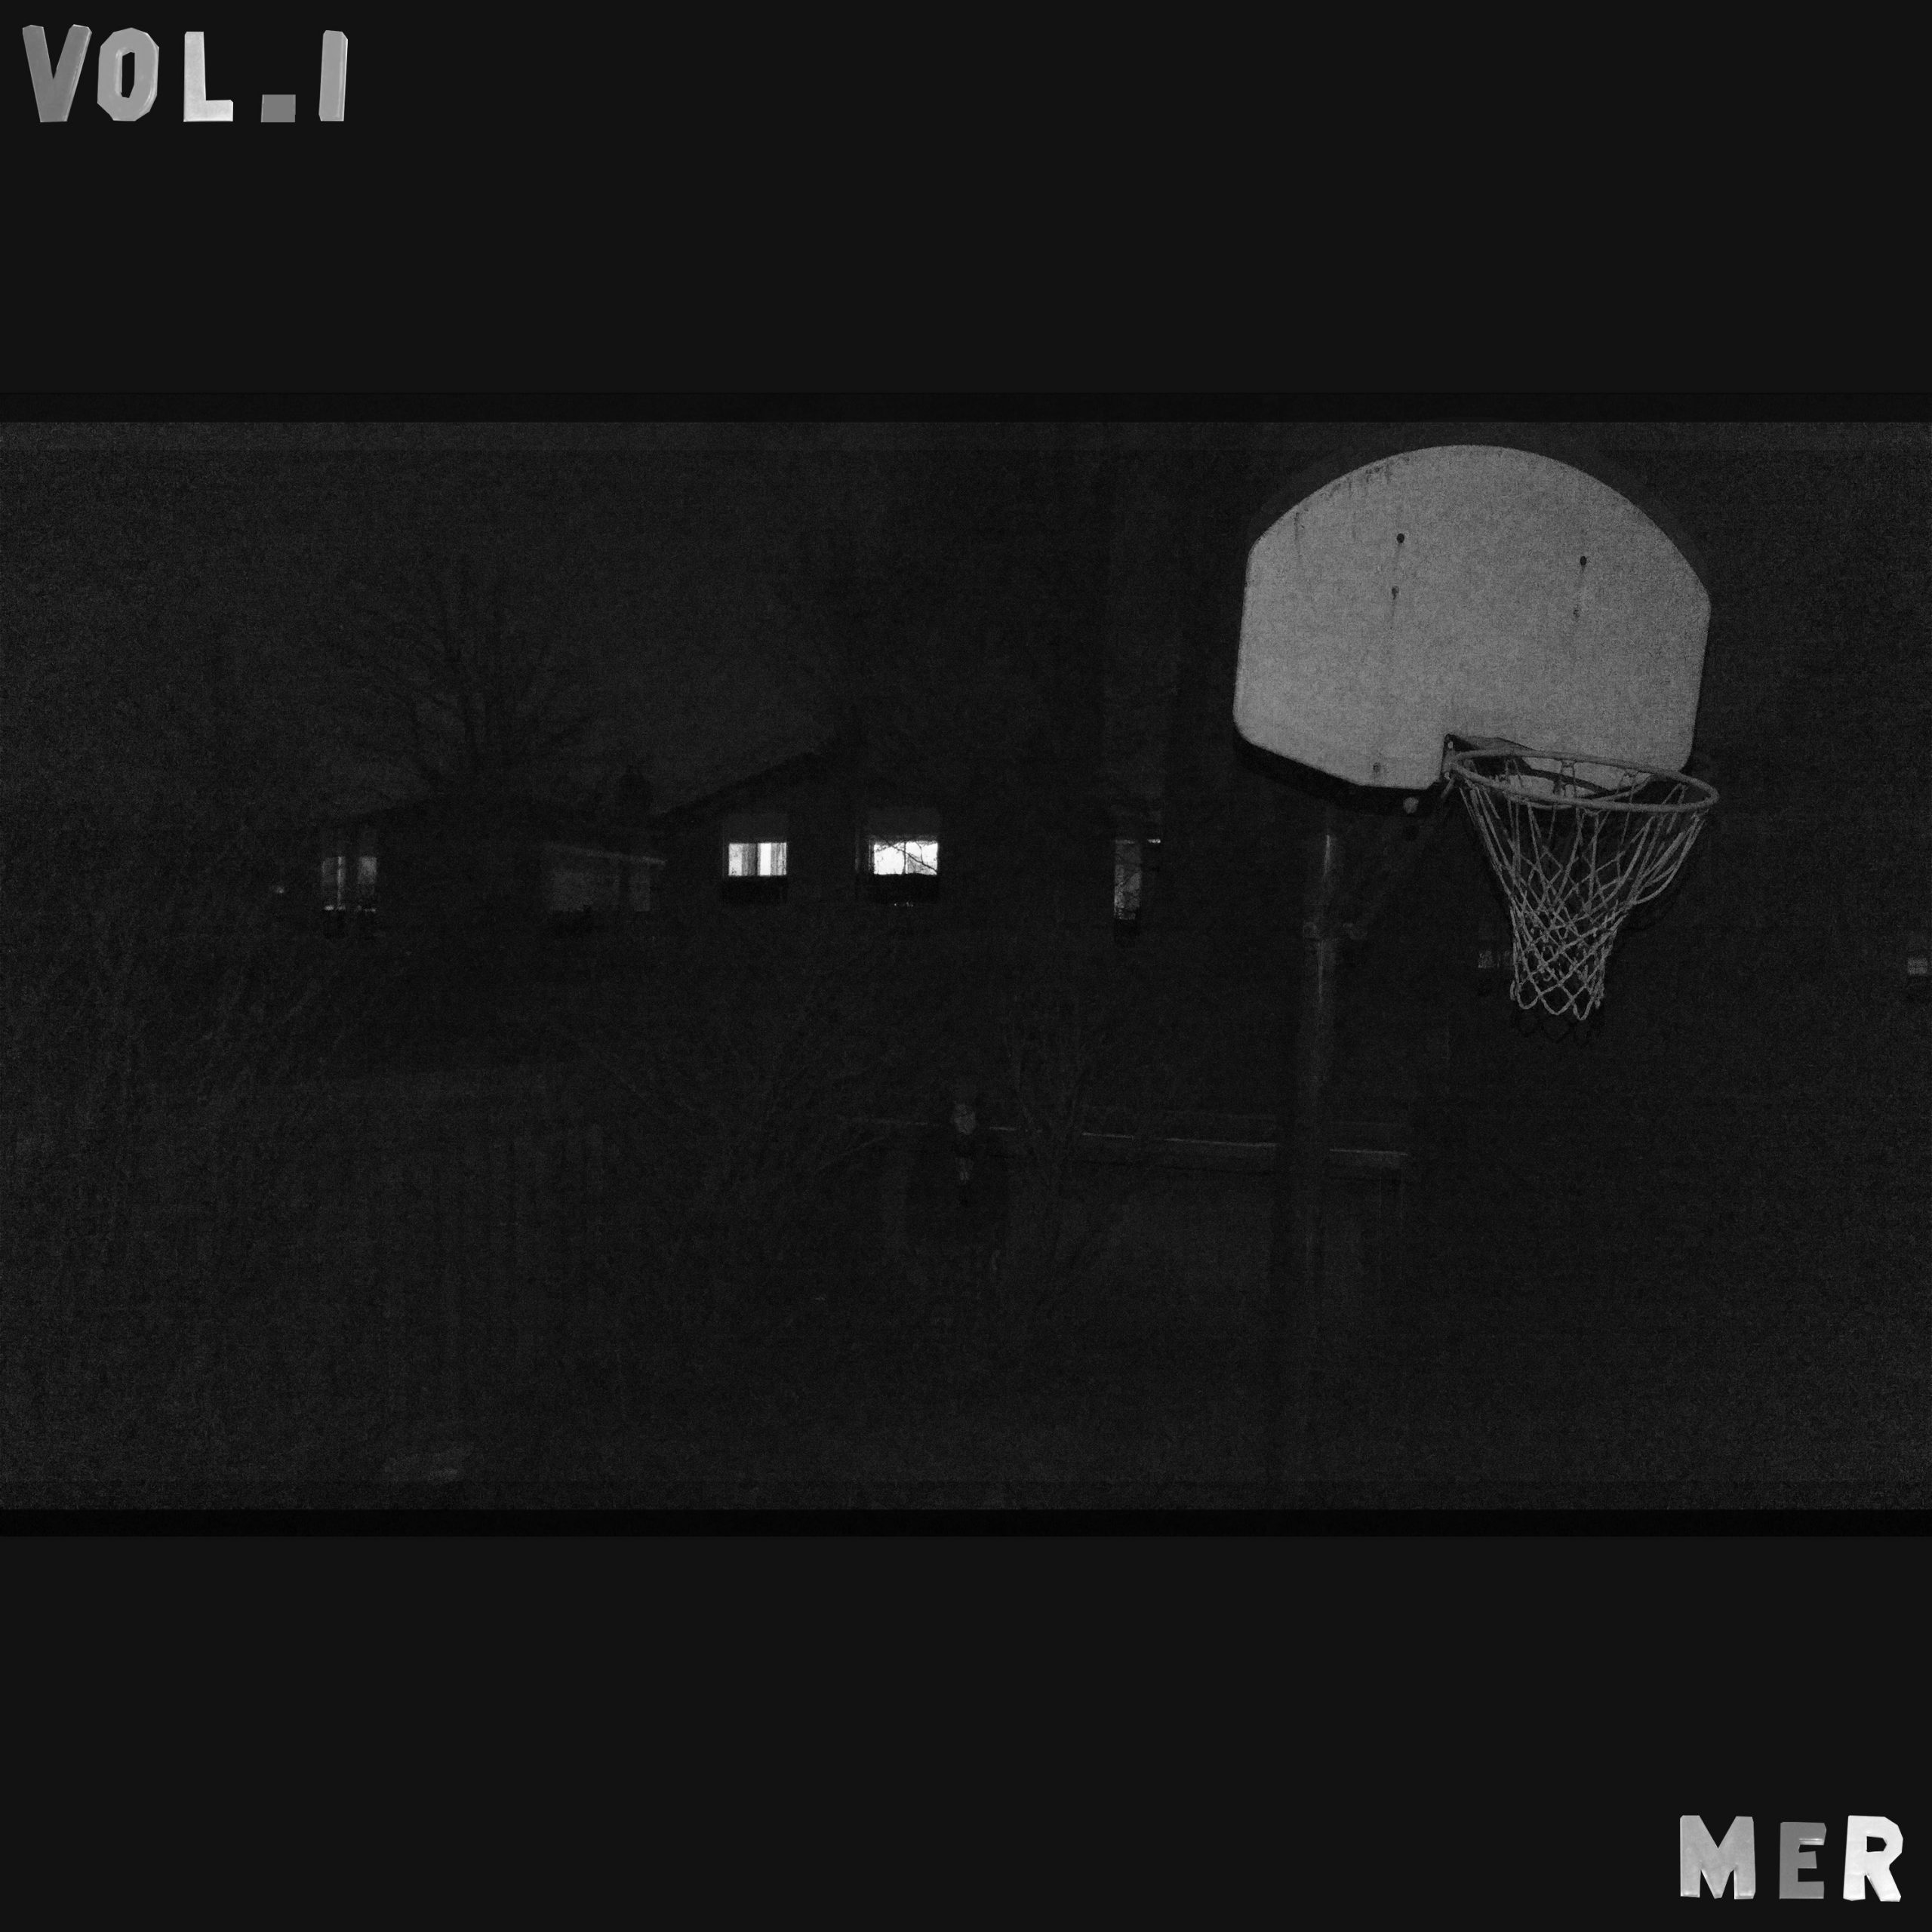 Vol.1 (MIXTAPE)